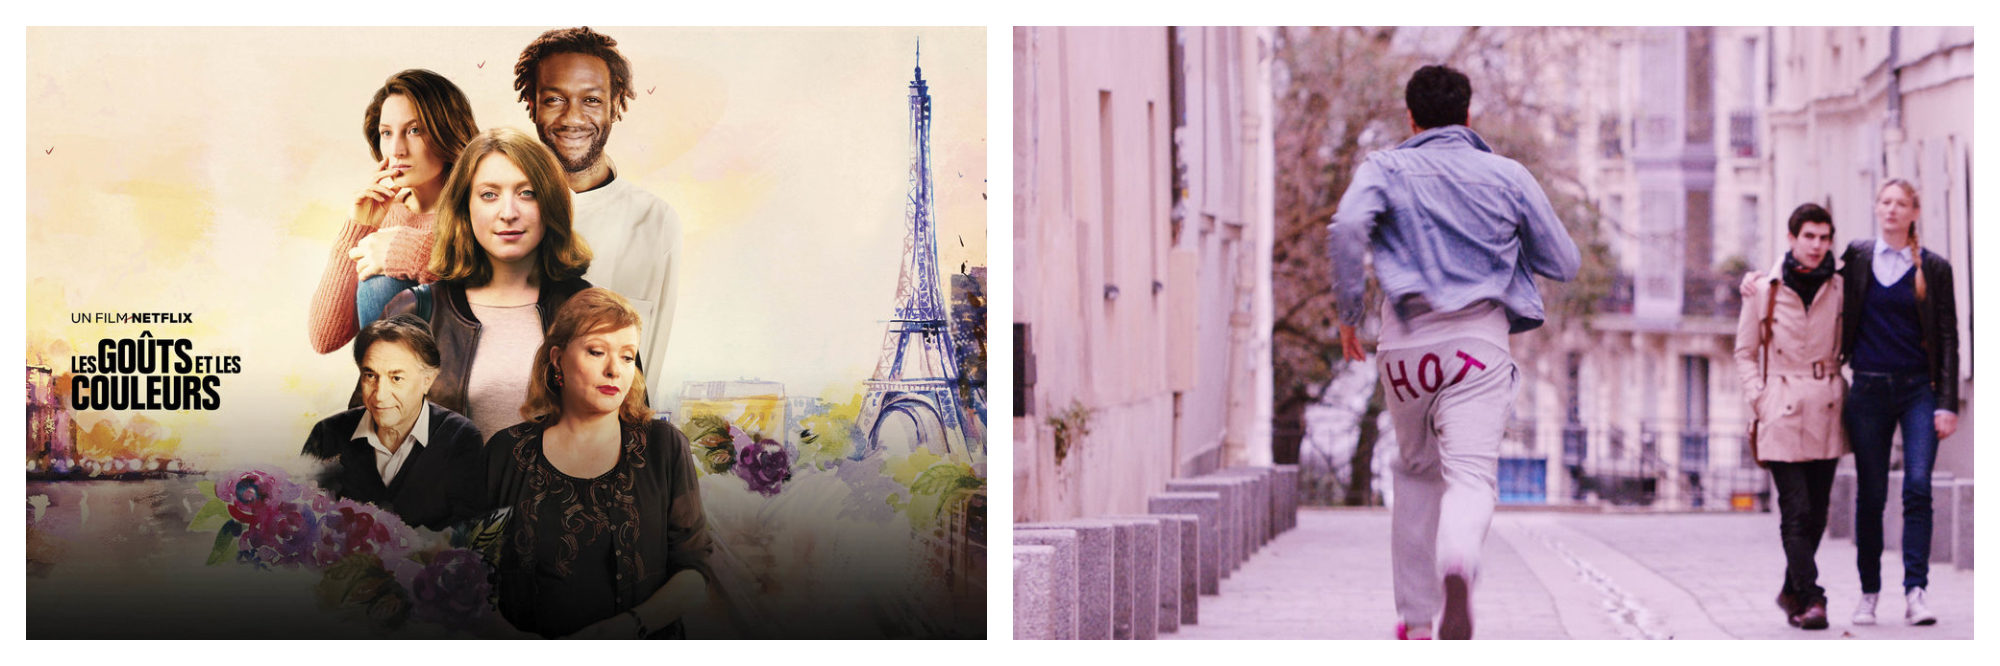 A poster for the French Netflix movie Les Gouts et les Couleurs, a great tool for learning French (left). A man with the word 'hot' written on the back of his trousers, walking through Paris (right).